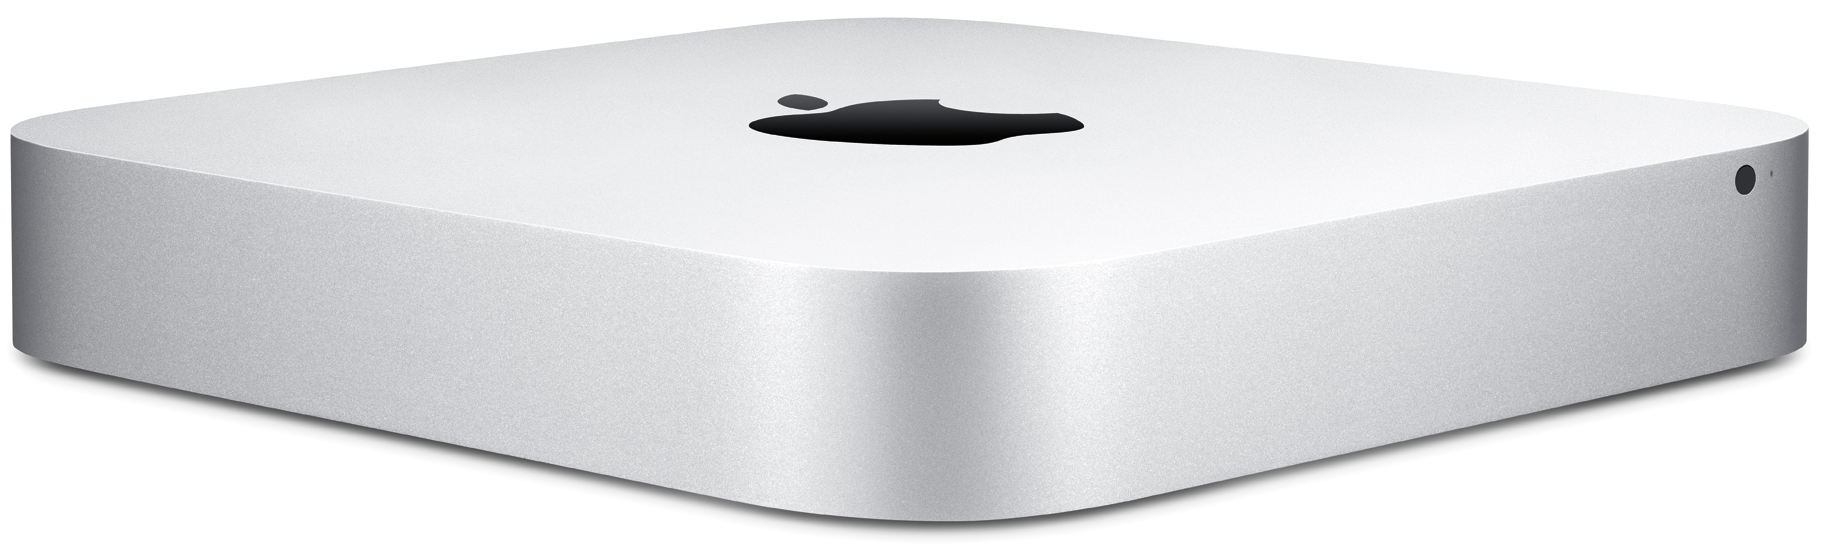 Mac mini Server mid-2011 (front, left-angled)